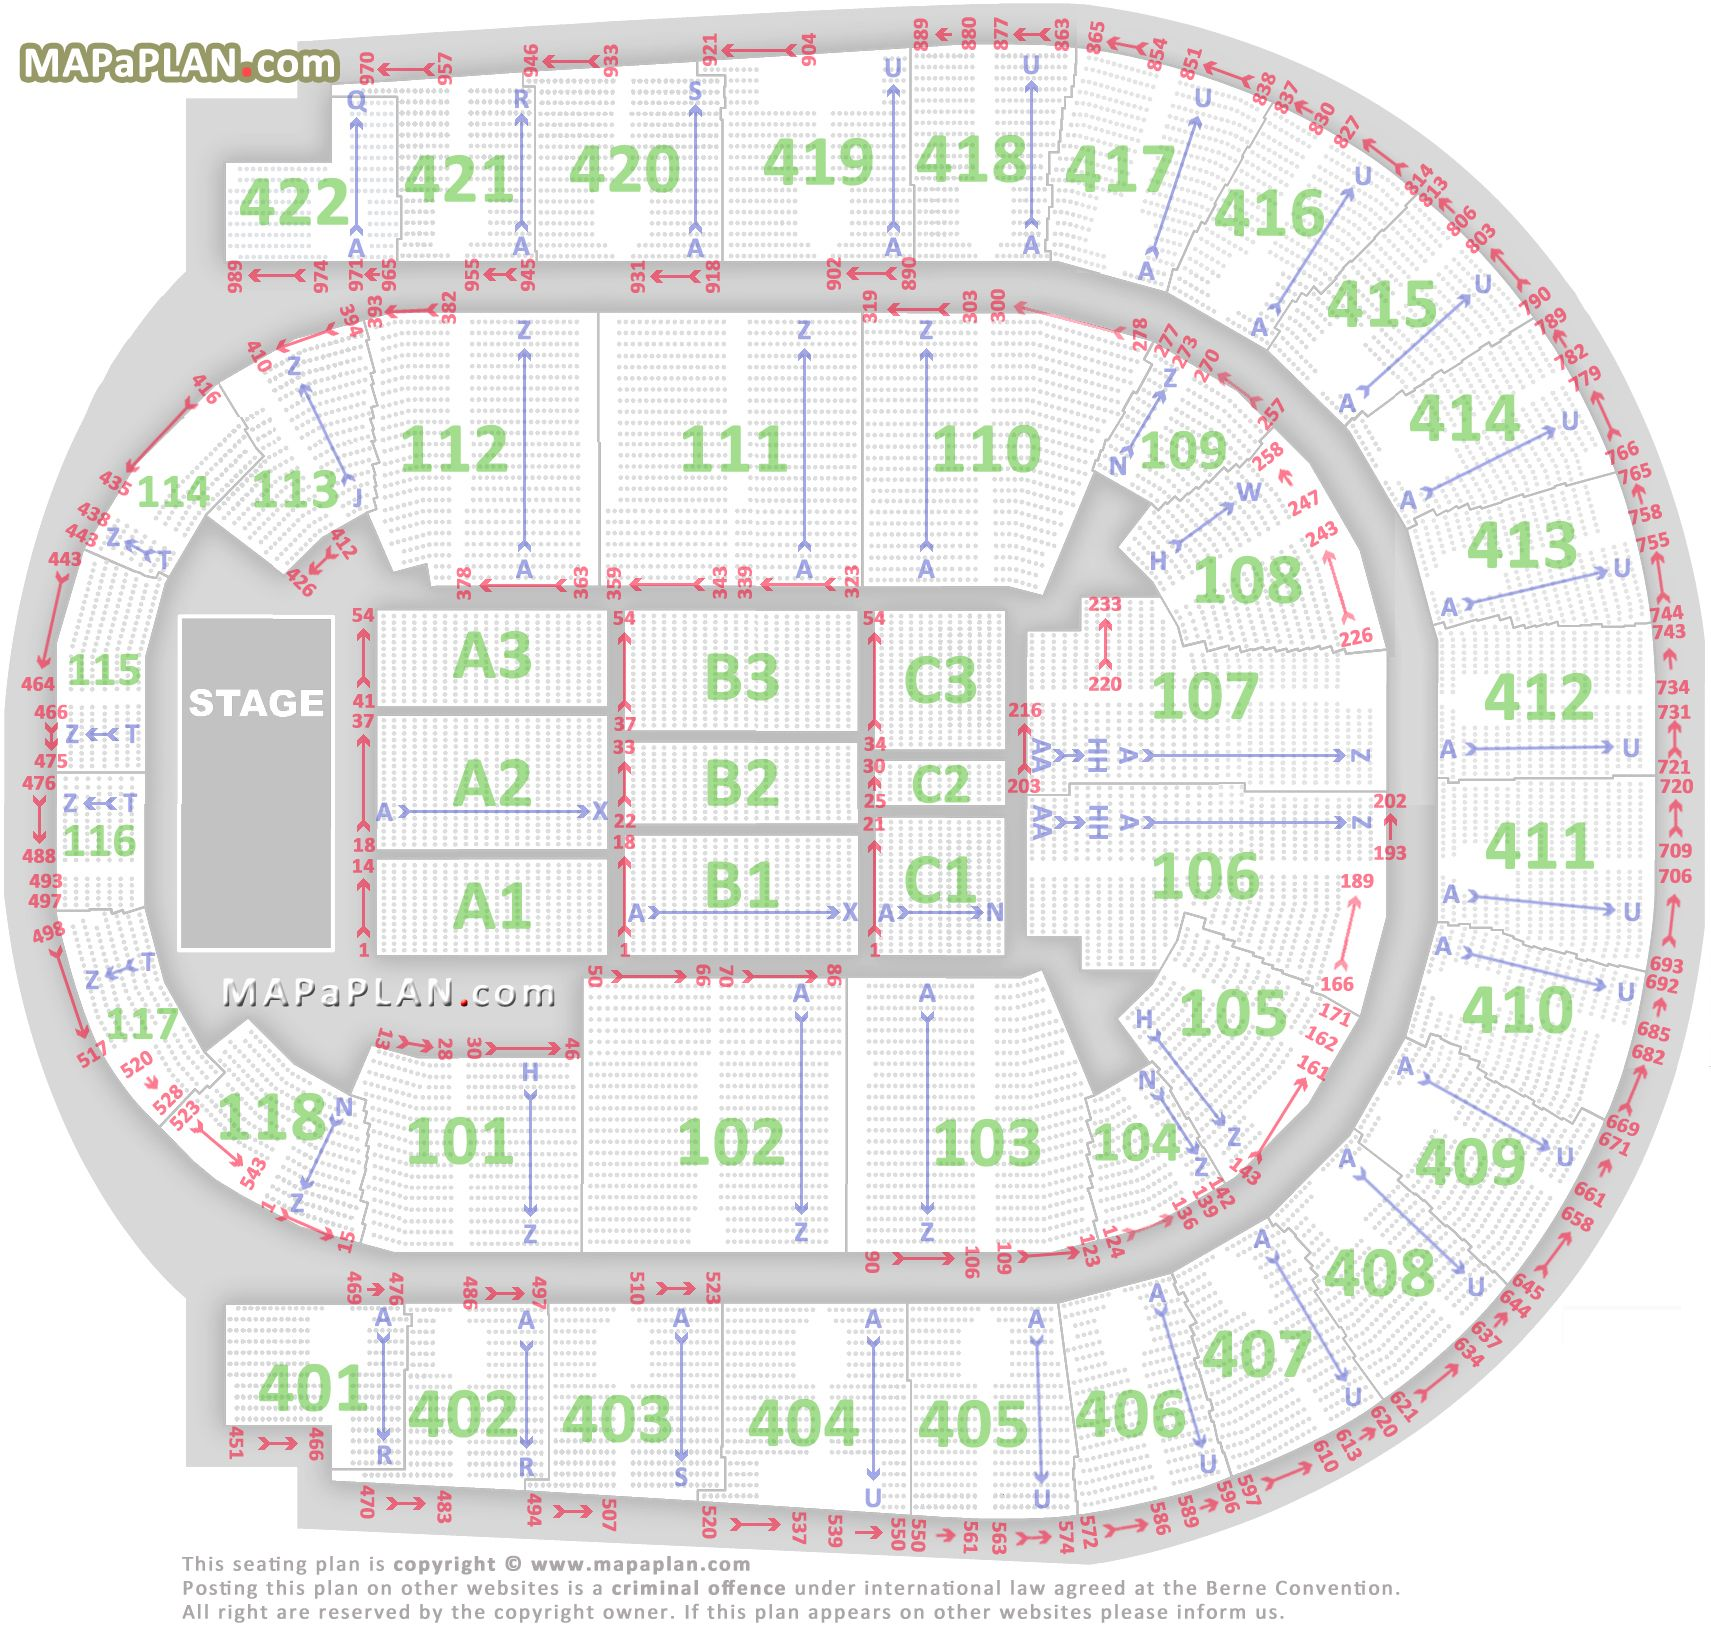 small resolution of the o2 arena london seating plan detailed seats rows and blocks numbers chart